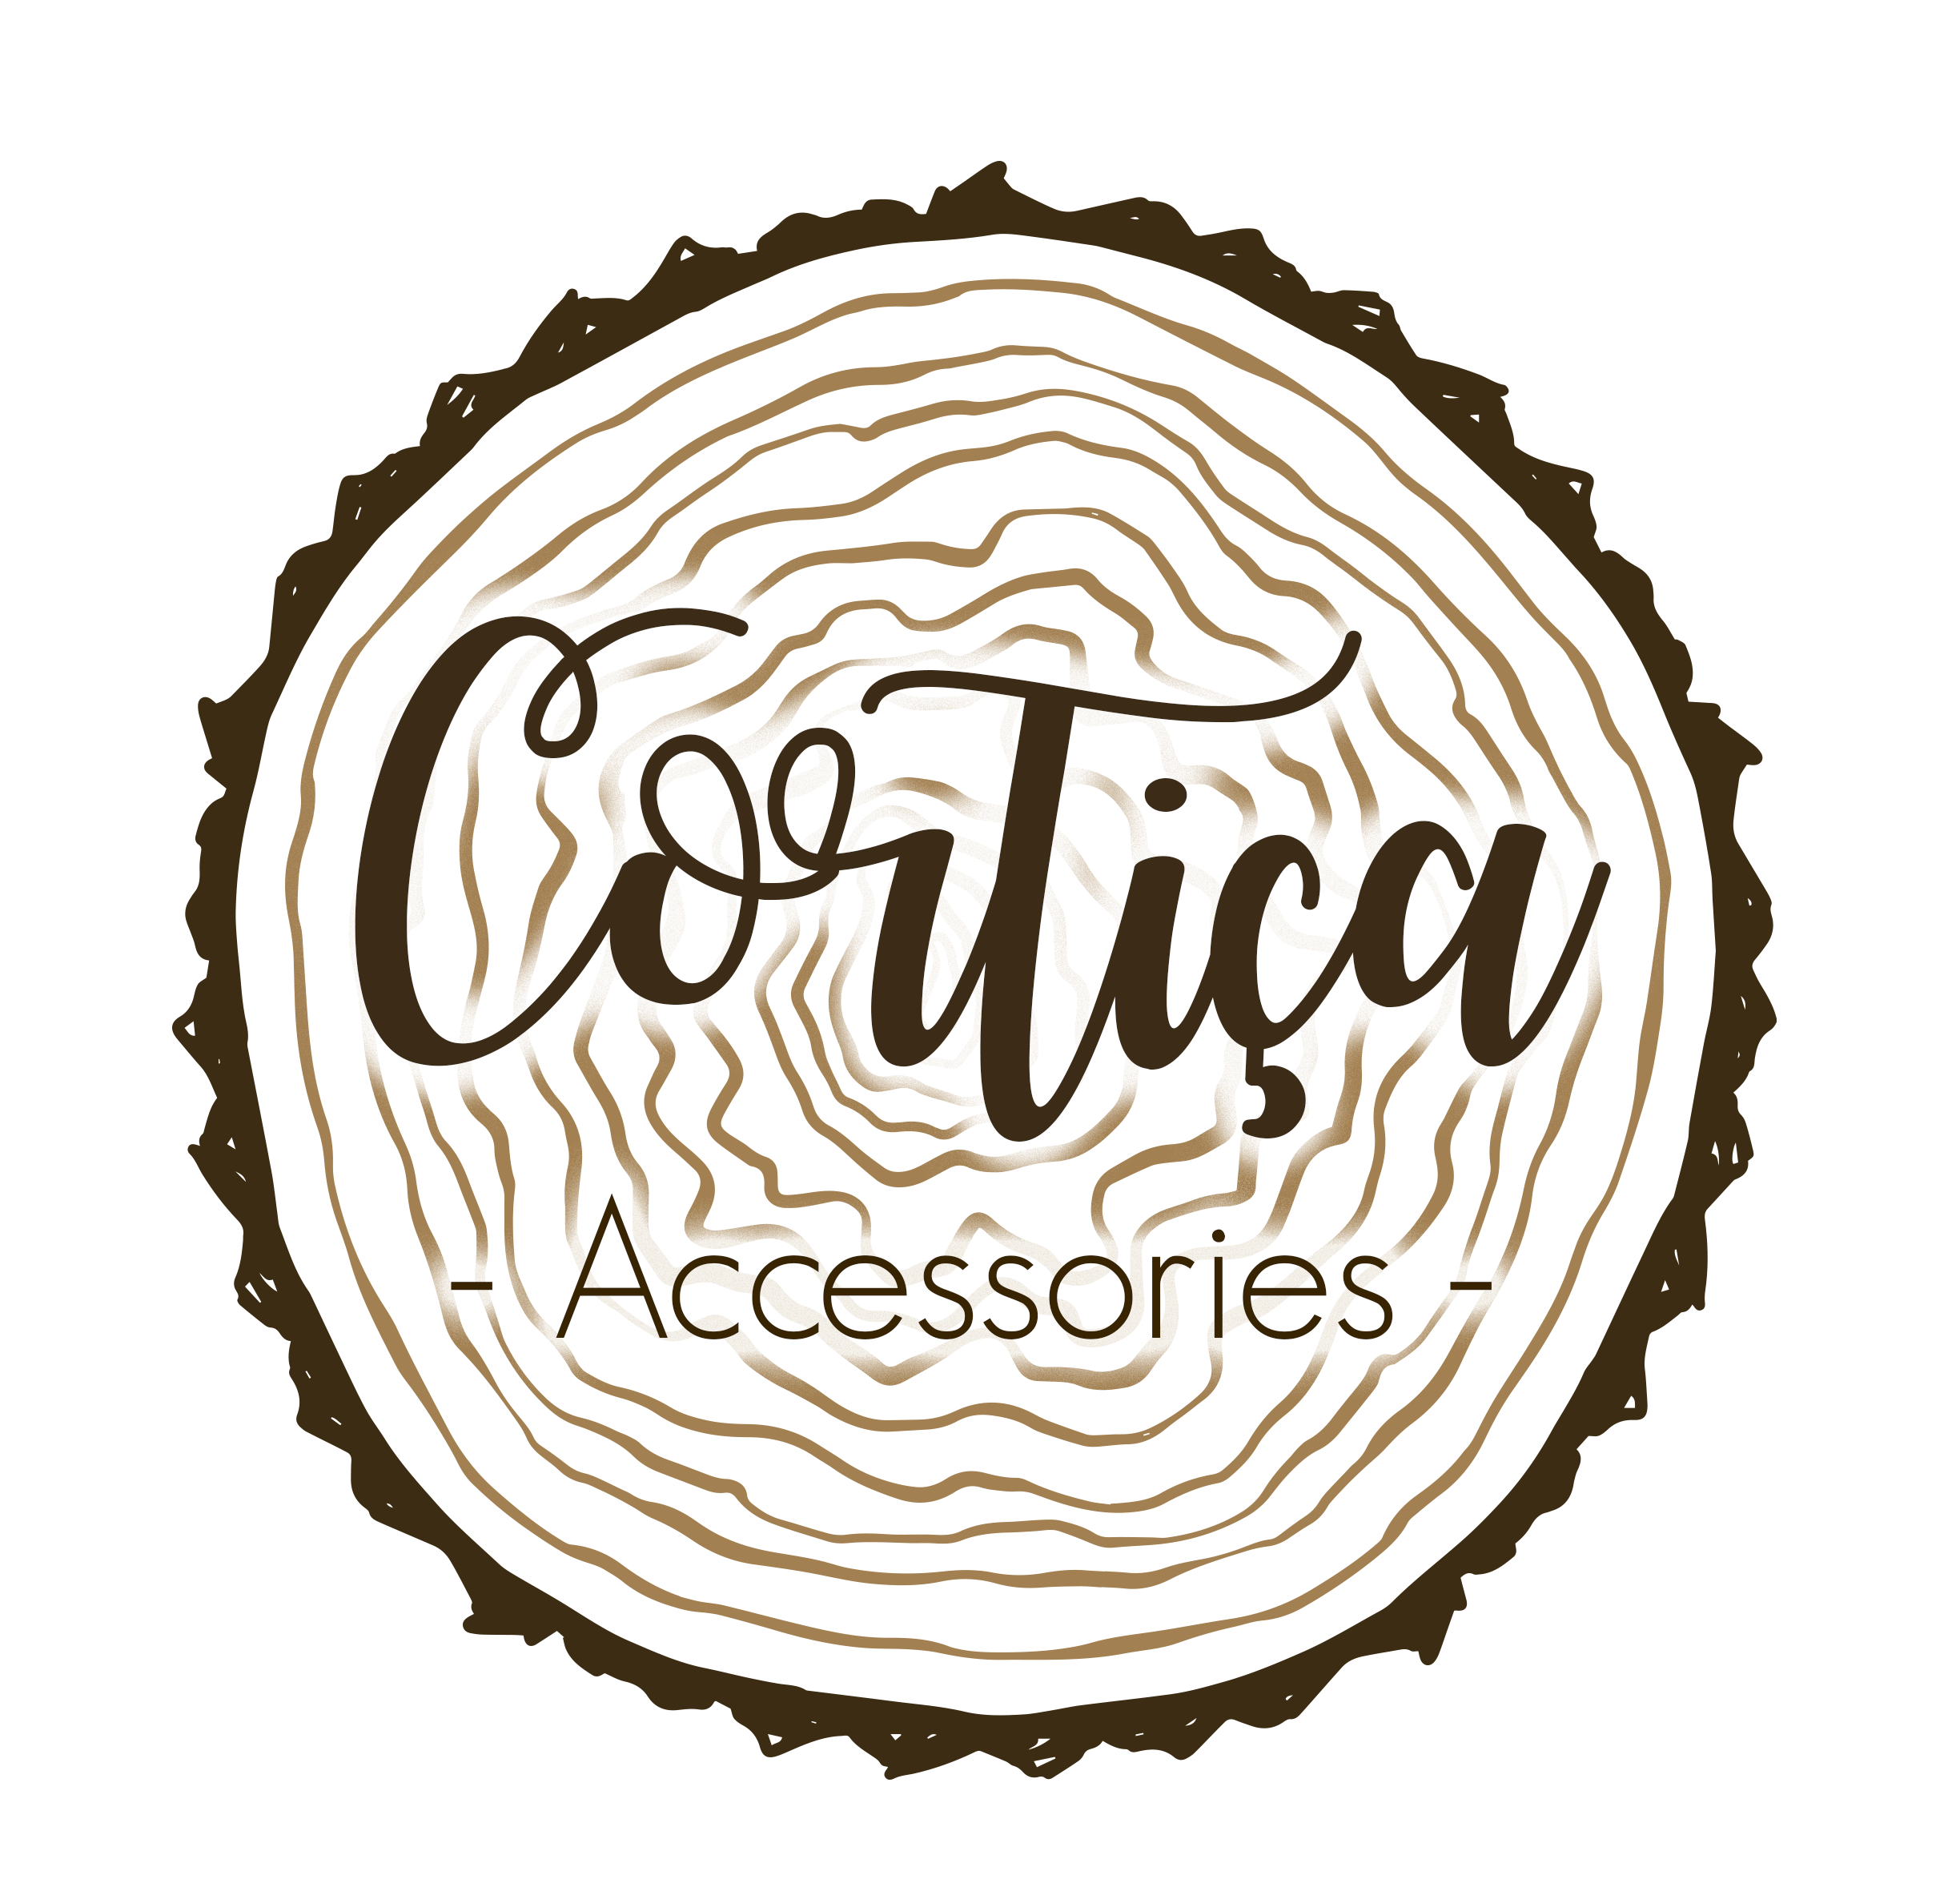 Cortiça Accessories